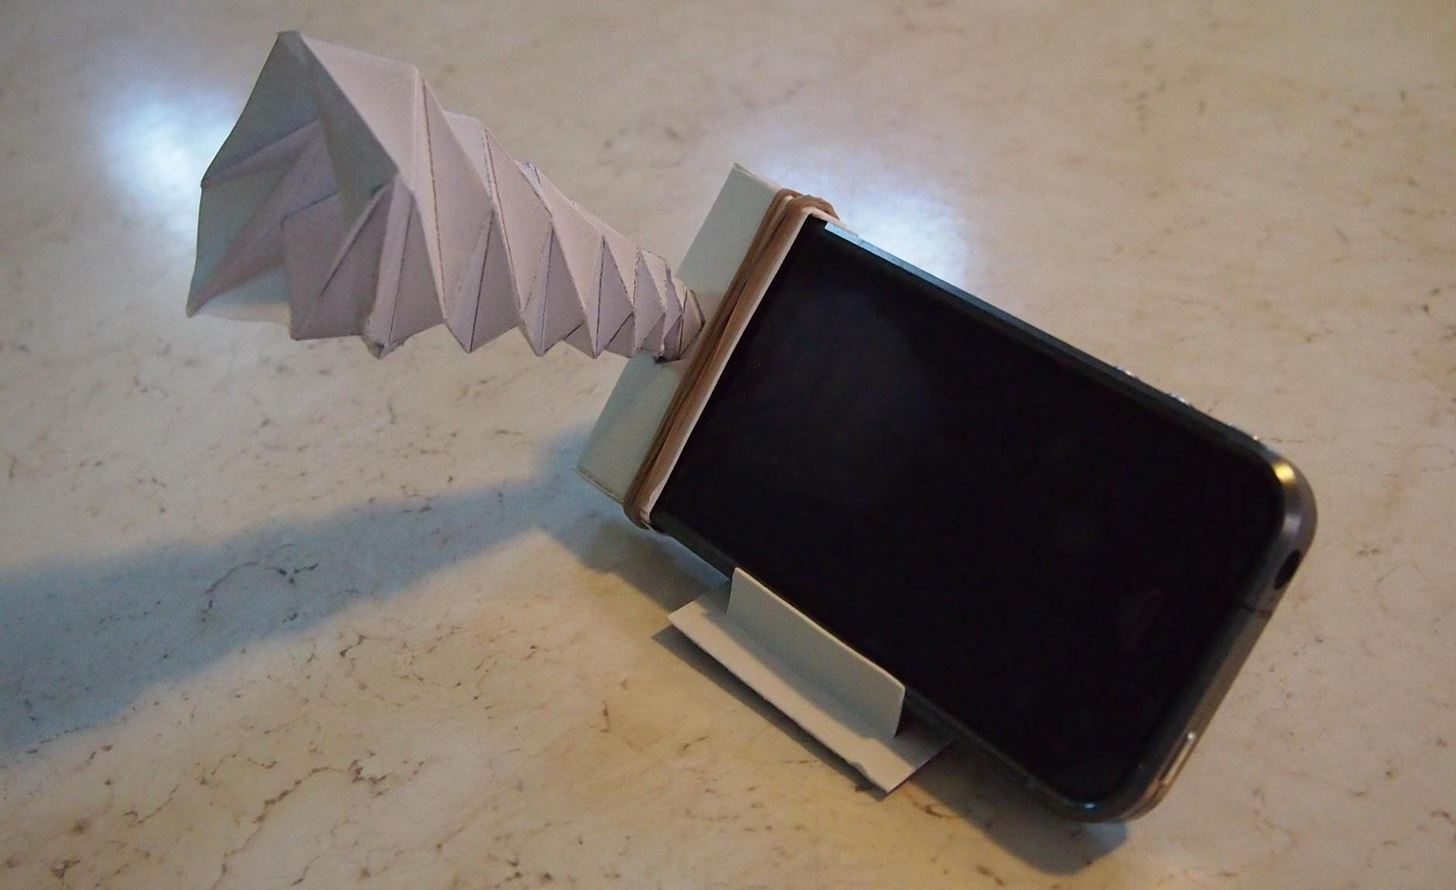 How to Make a Foldable, Wallet-Sized Paper Amplifier for Your Smartphone